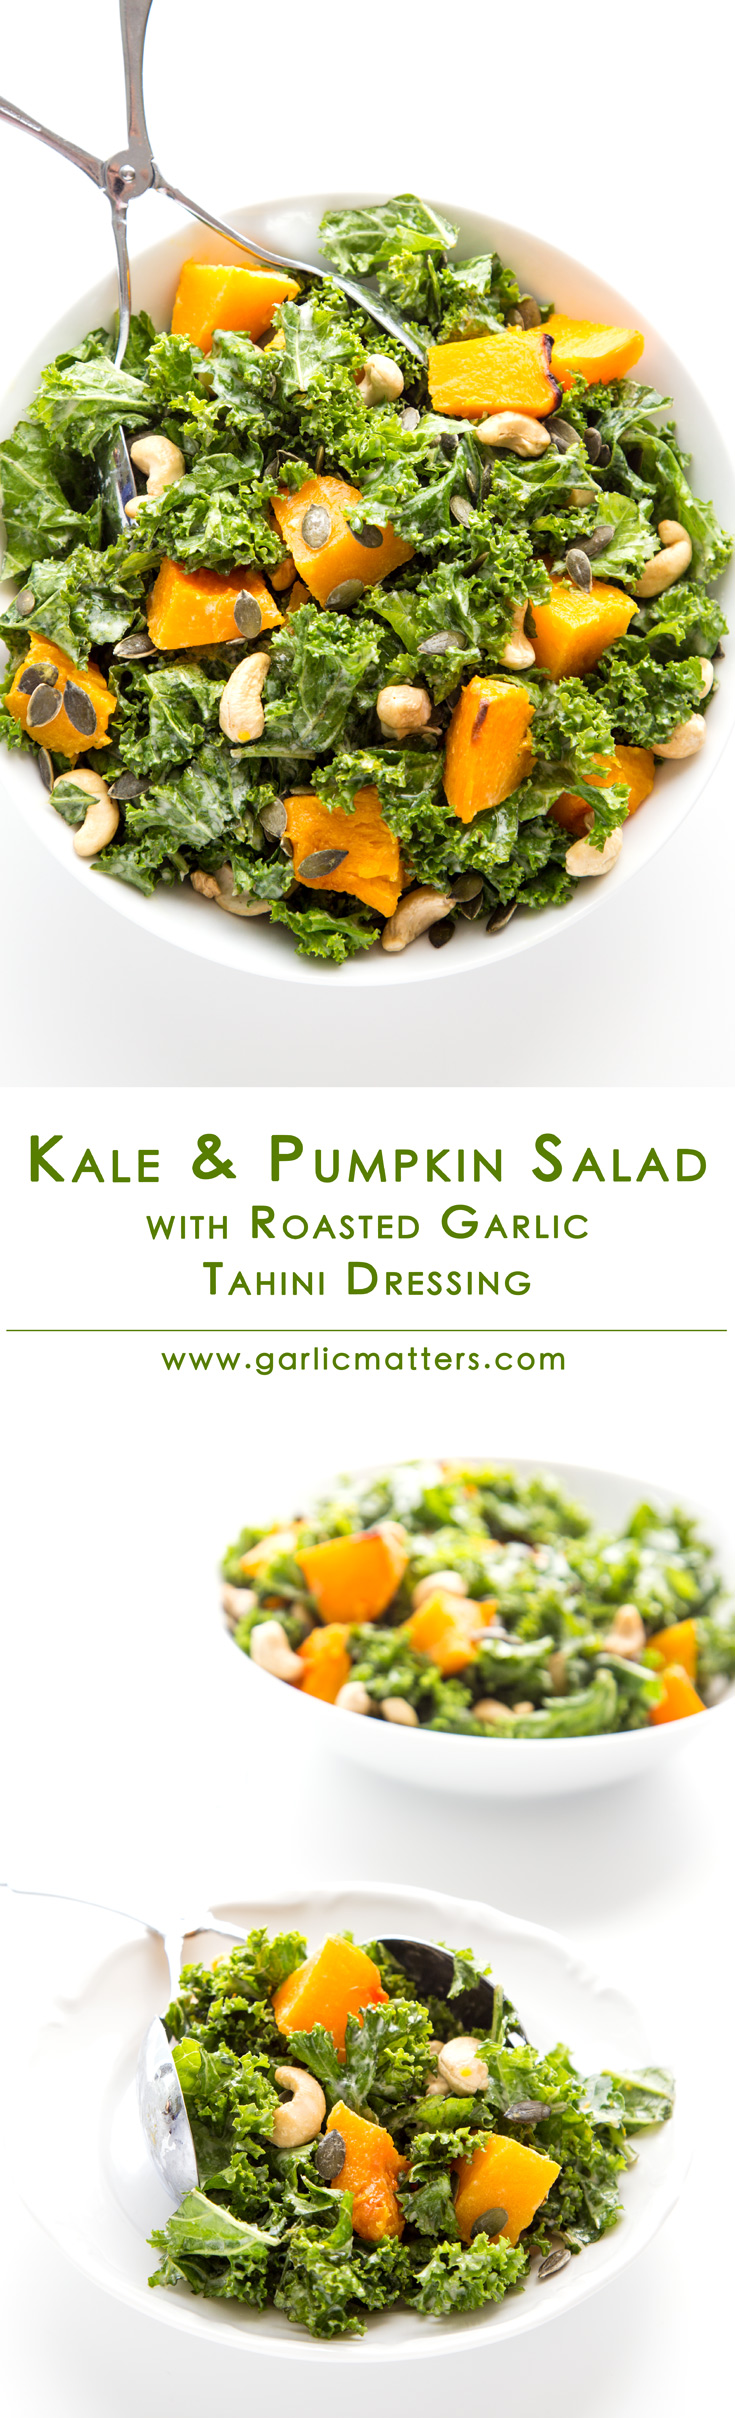 Kale and Pumpkin Salad with Roasted Garlic Tahini Dressing - delicious, vegan recipe for easy and super food healthy meal.